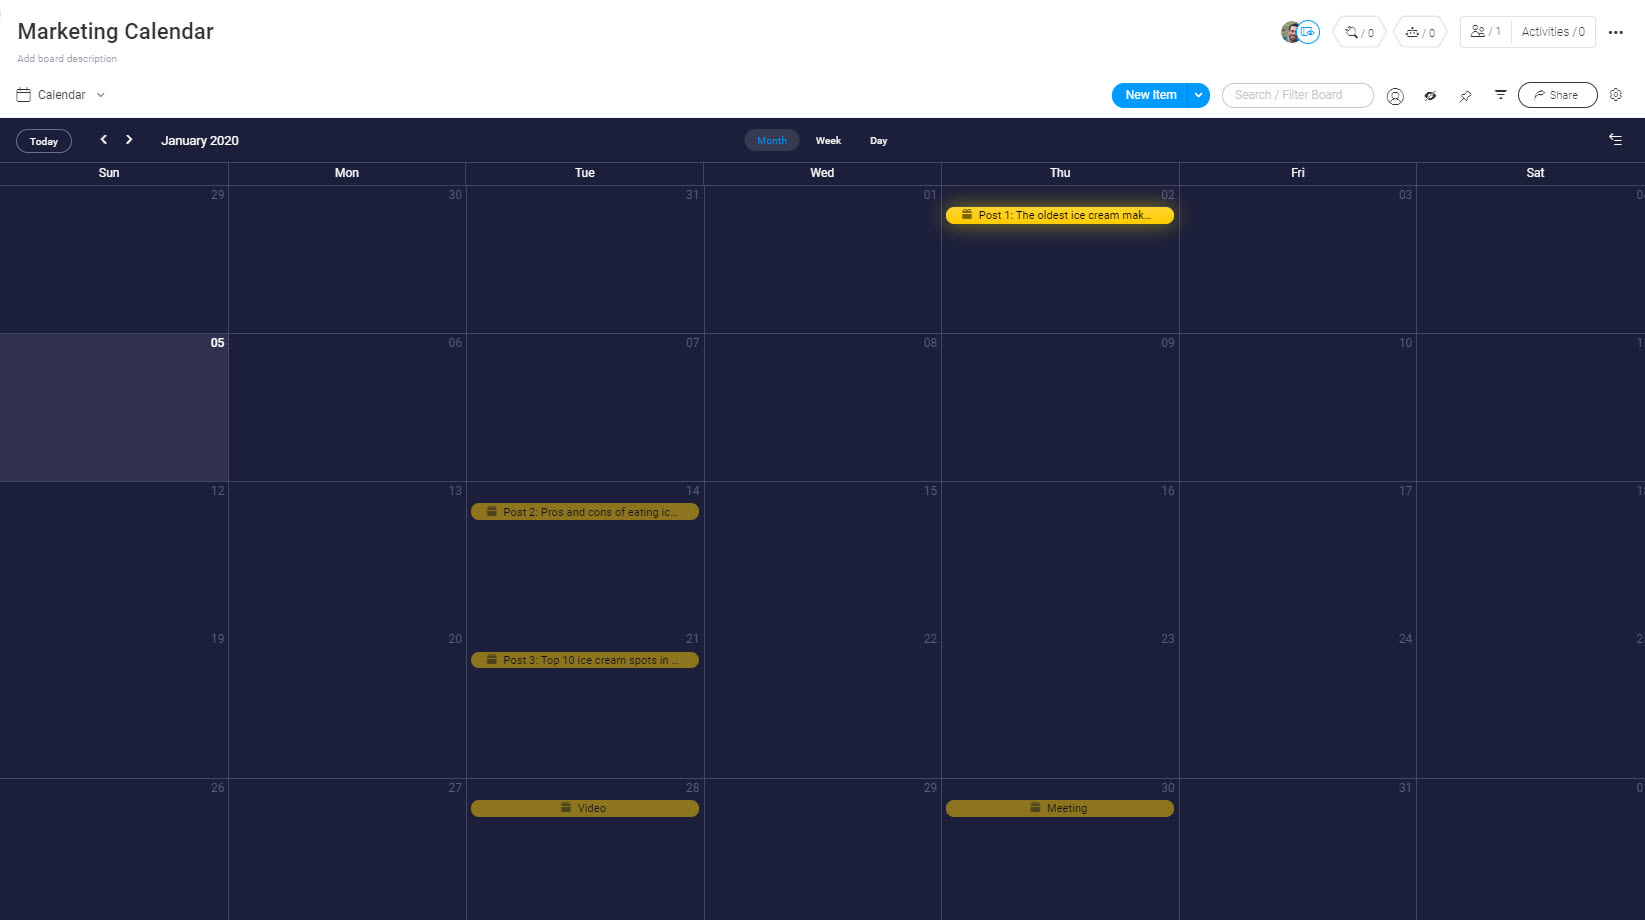 Marketing Calendar Template - Calendar View